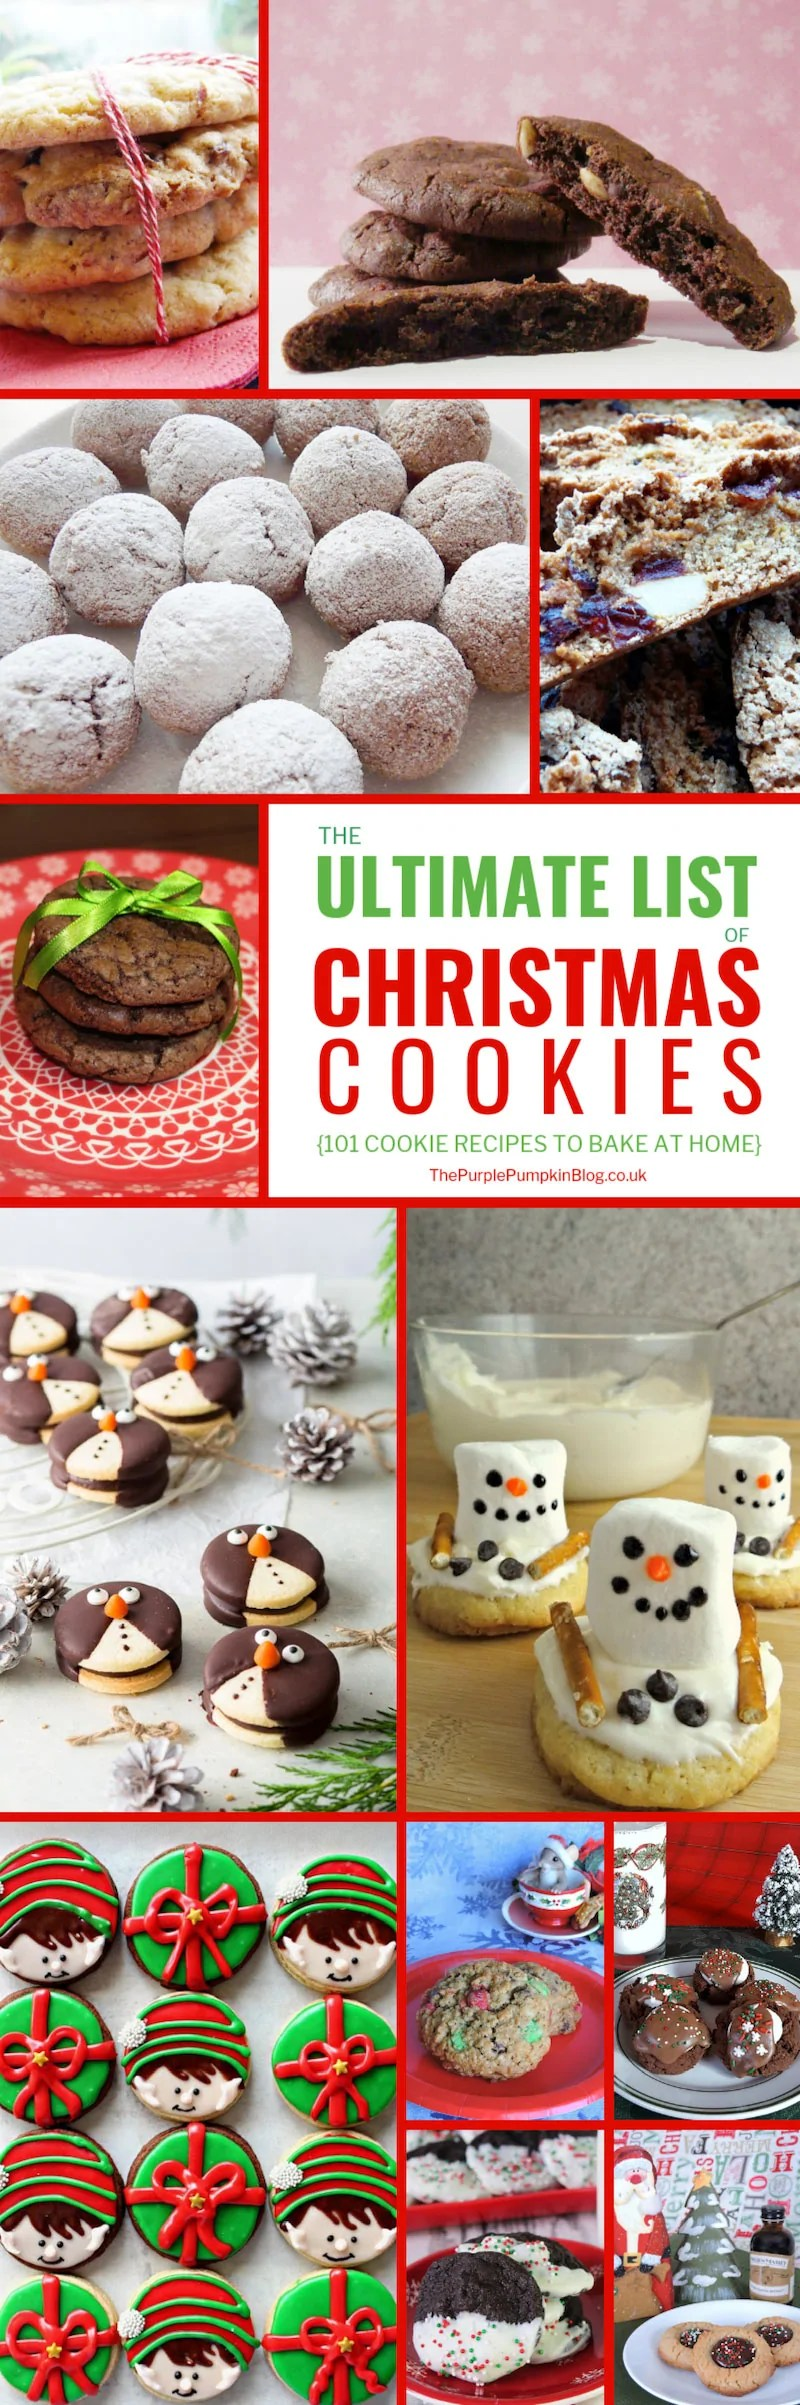 The ultimate list of Christmas cookies, with 101 Christmas cookie recipes to bake at home! So if you are a regular cookie maker, or only put your baking hat on during the Holidays, this list of Christmas cookie recipes has plenty to keep you busy all season long. I'm sure family and friends will thank you too! #ChristmasCookies #CookieRecipes #ChristmasRecipes